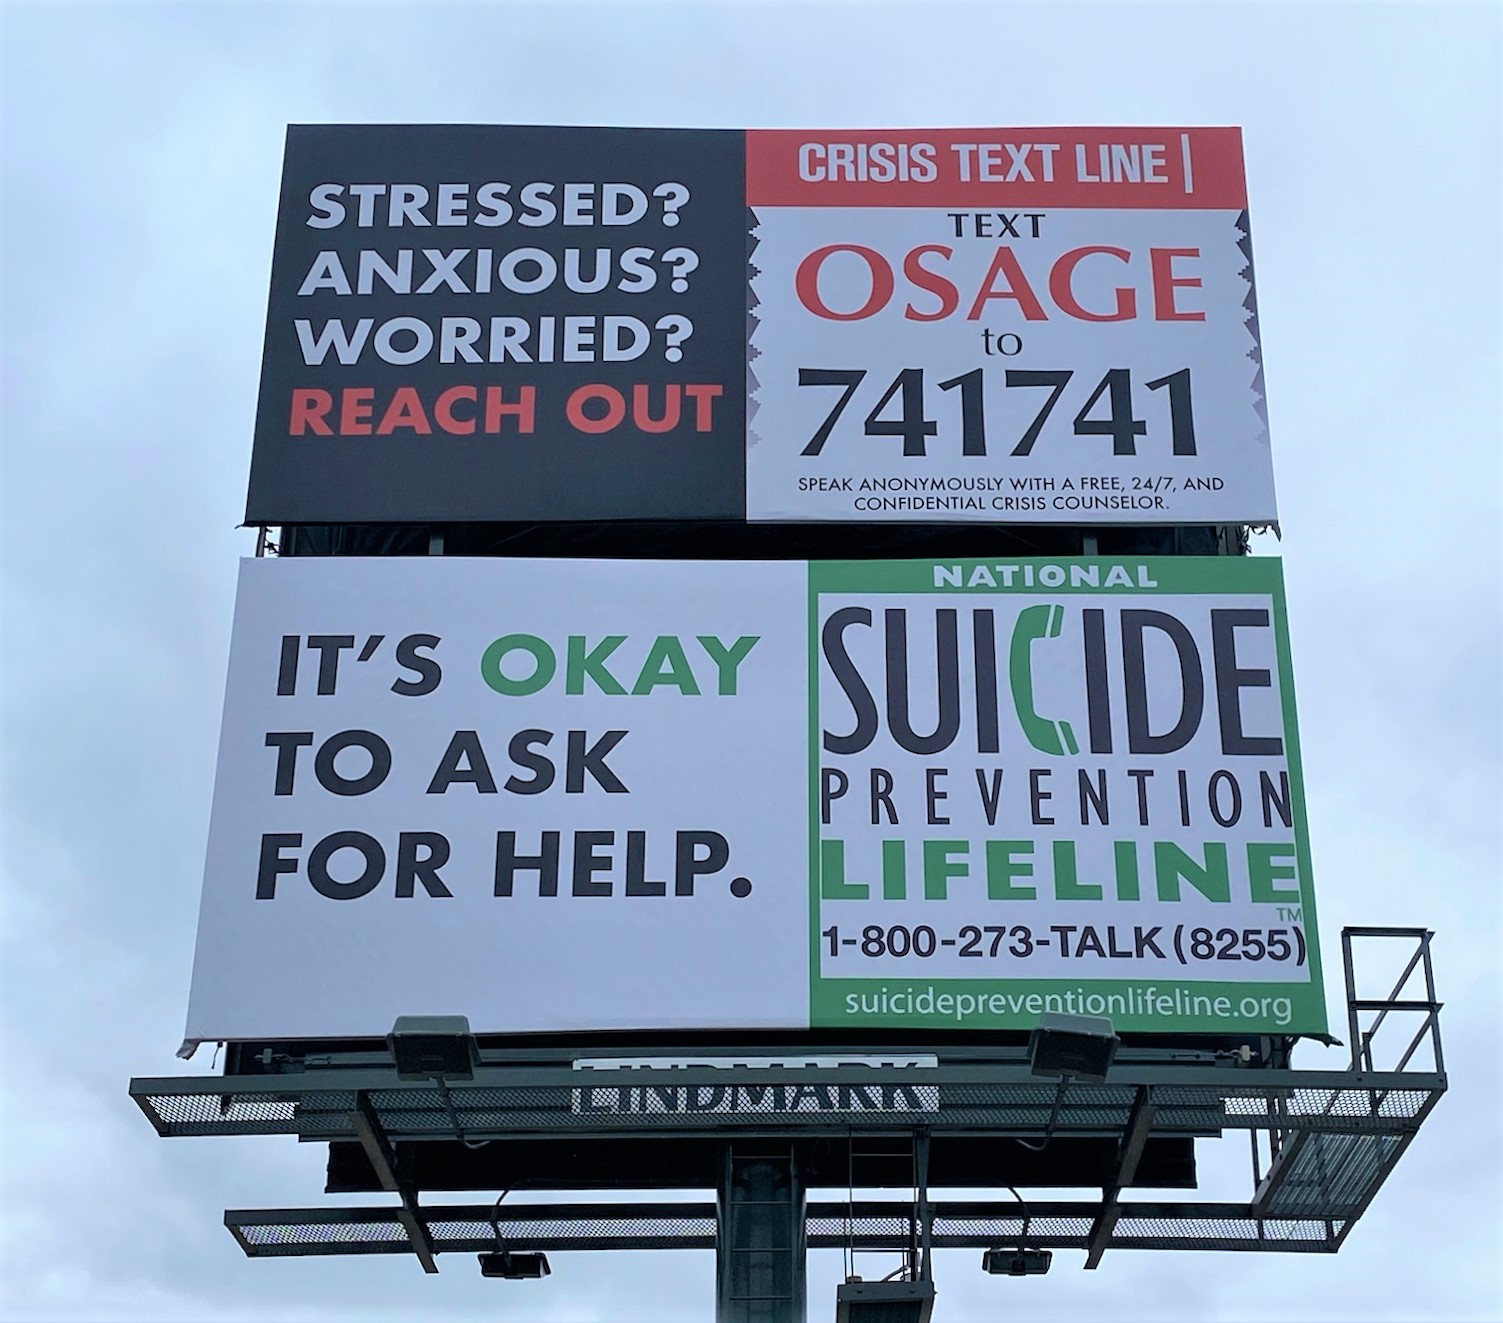 crisis text line and suicide prevention billboards photo